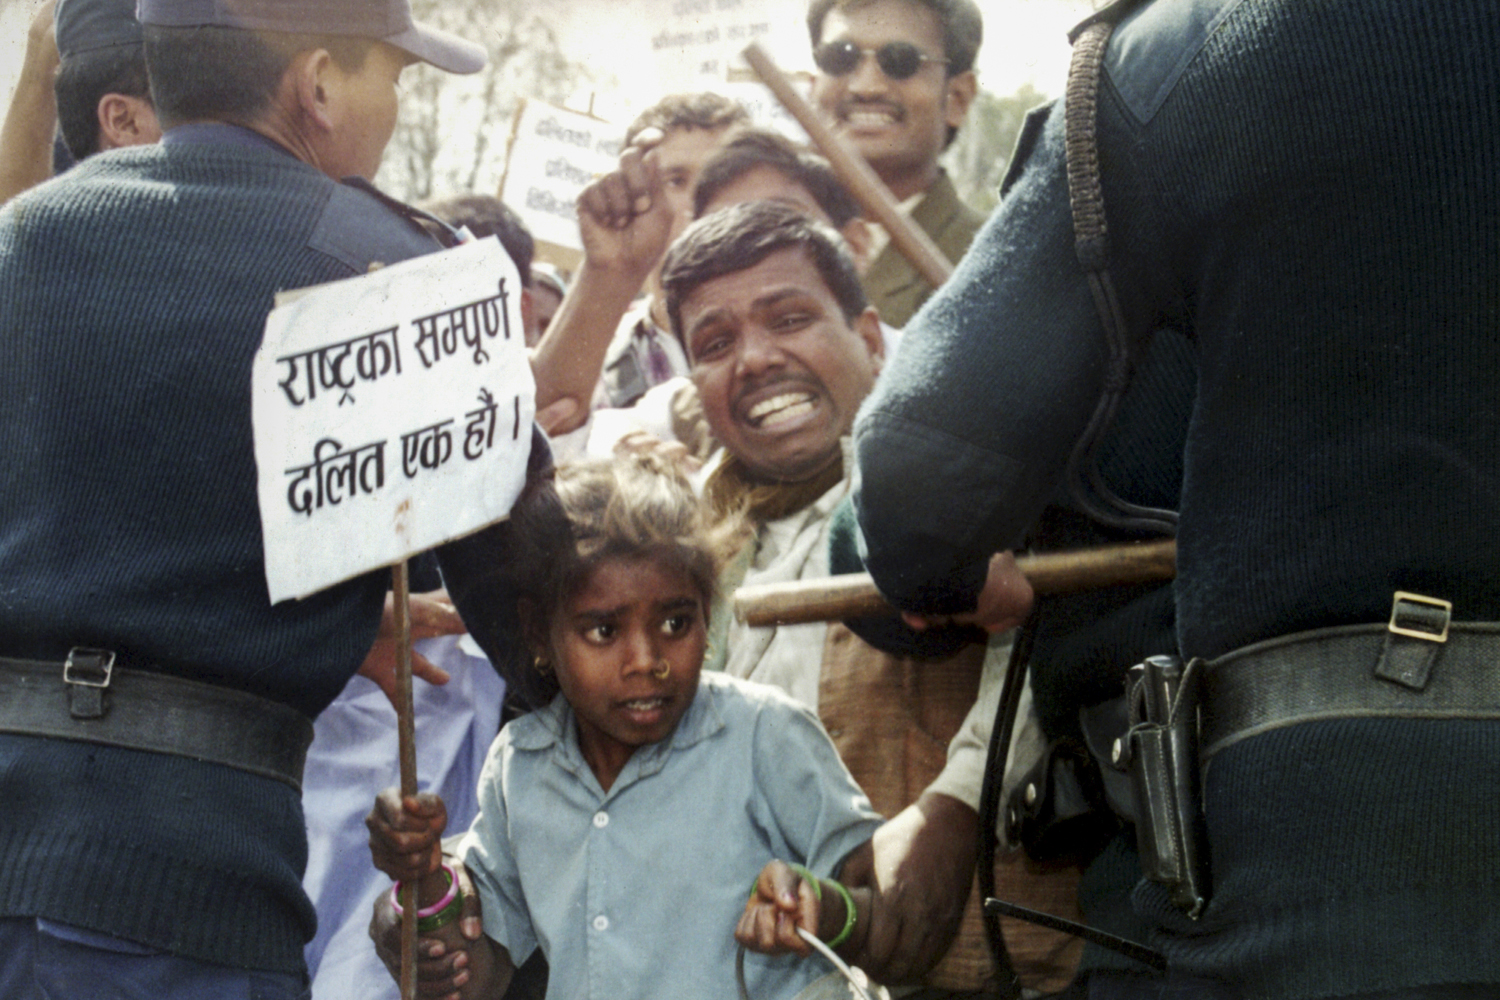 Photo Credit/Dalit: A quest for dignity